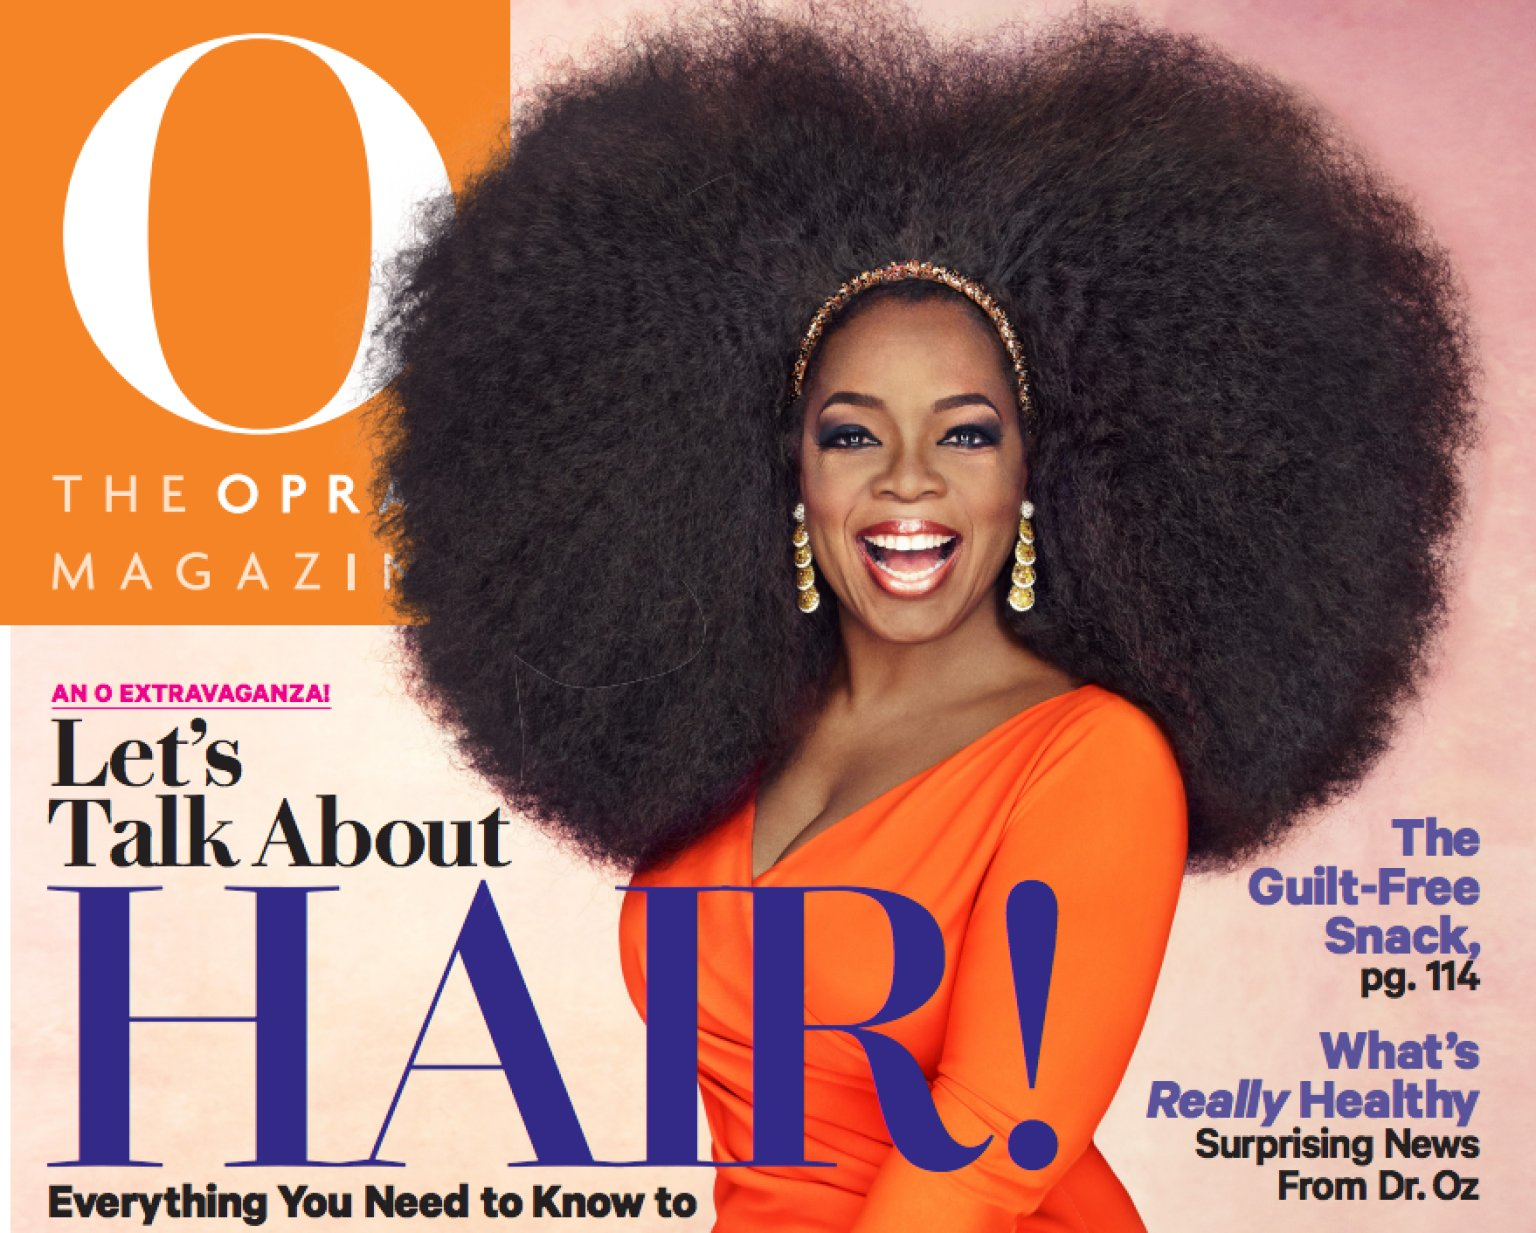 the bodacious success of oprah Oprah winfrey is one of the most influential women in the world she inspired millions of viewers with her talk show find out her tips for success.